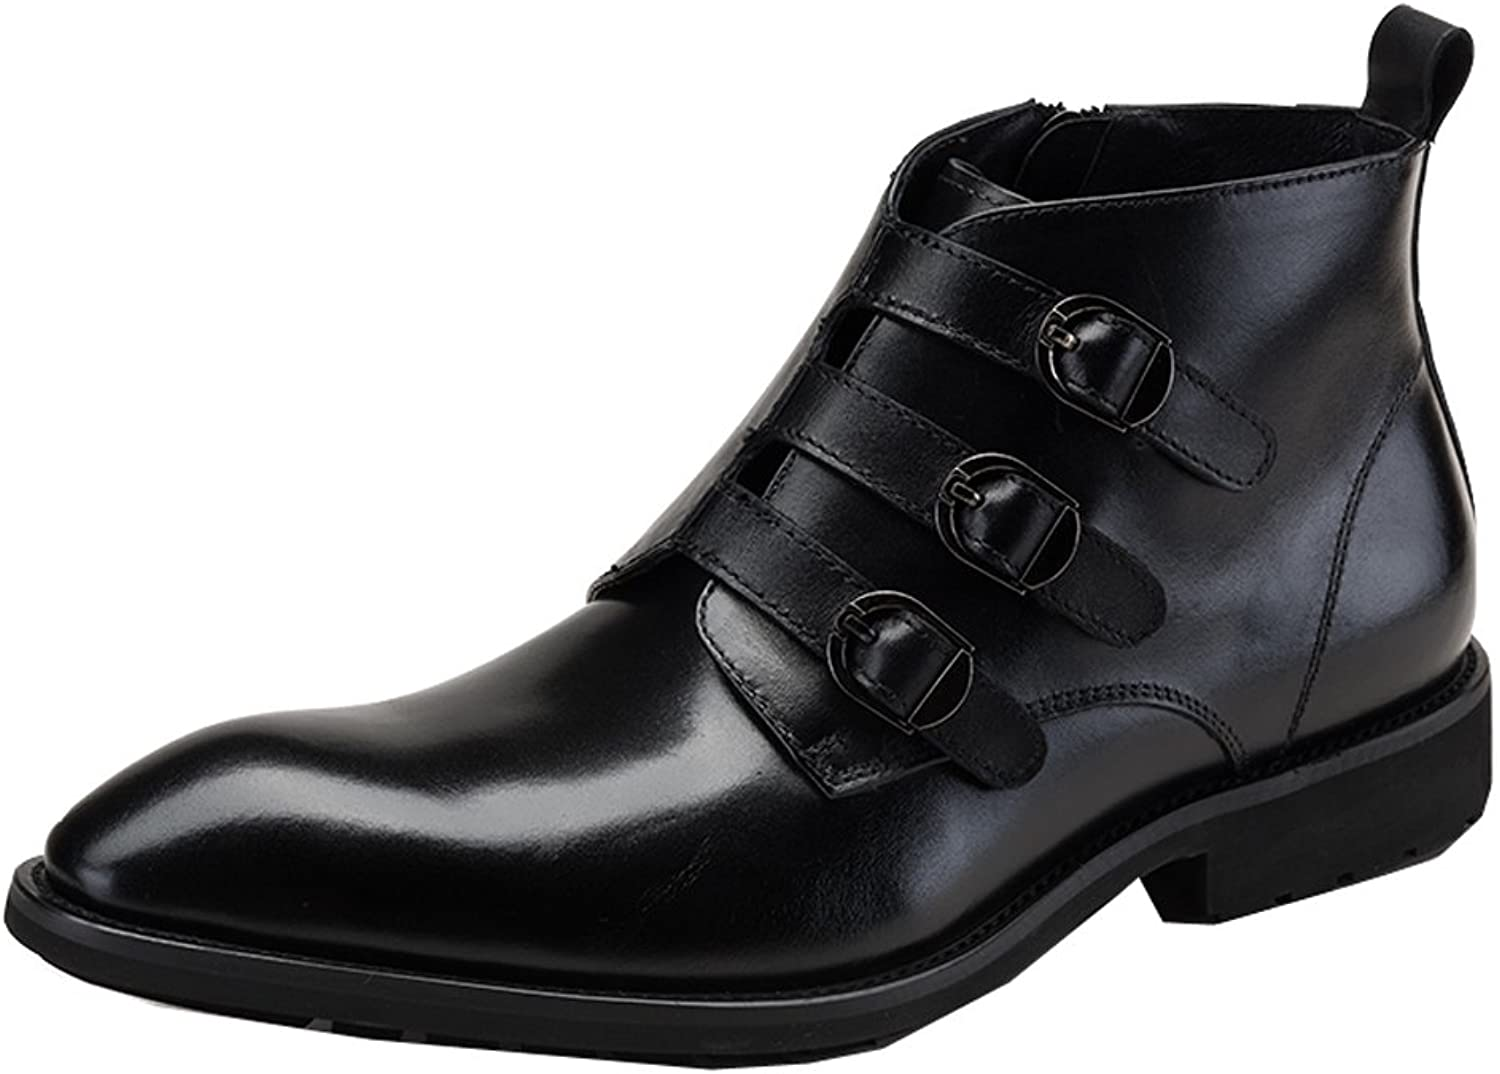 MedzRE Men's Buckle Closure Side Zip Work Leisure Boots in Leather